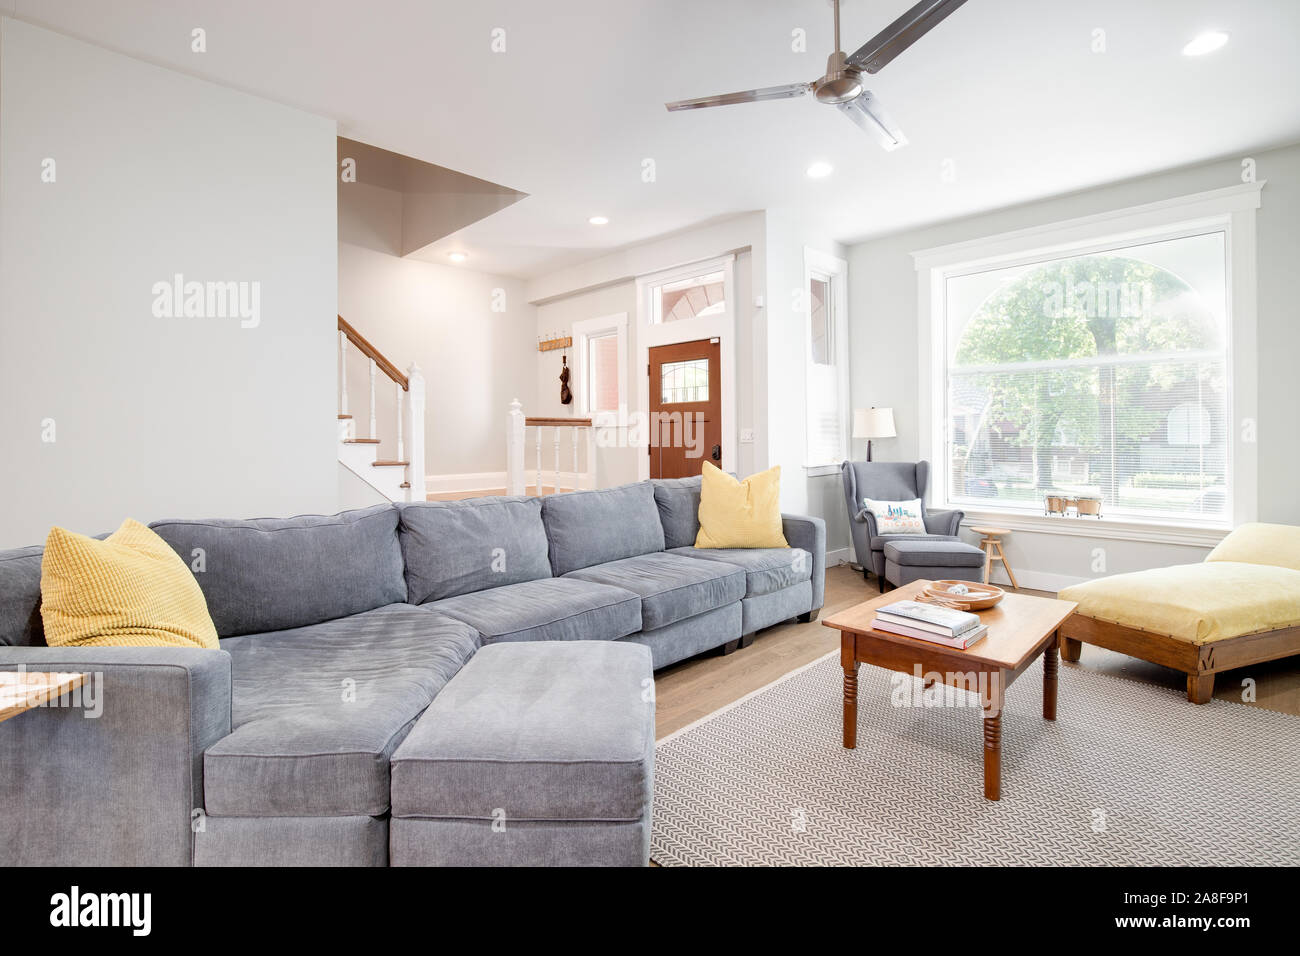 A Luxurious Living Room In A Downtown Chicago Neighborhood The Room Features A Large Grey Couch With Yellow Accent Pillows And An Area Rug Stock Photo Alamy